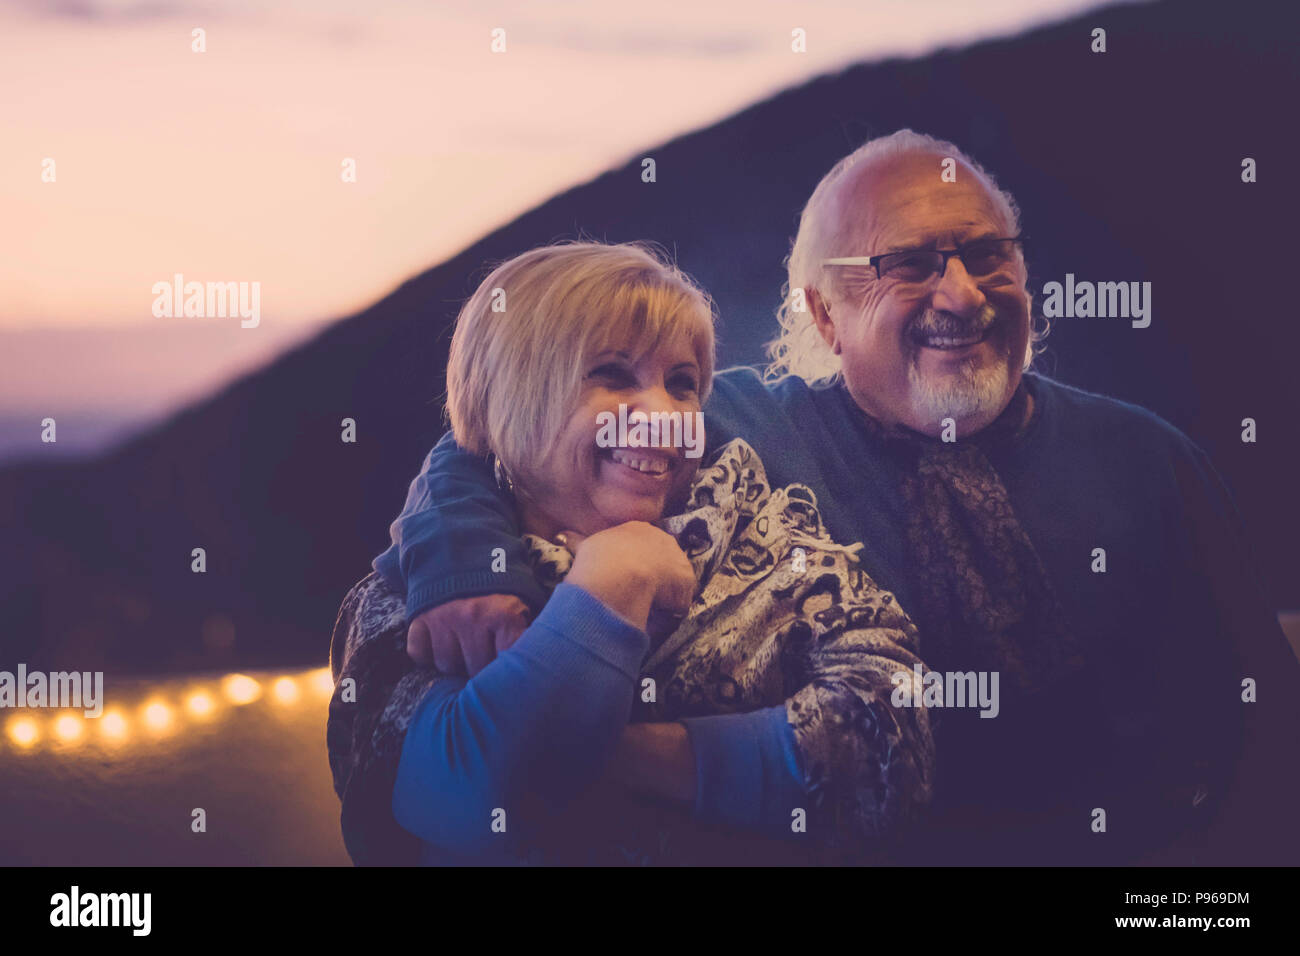 man and woman senior gentlemens aged in love hug and have fun smiling on the rooftop in vacation at home. night light atmosphere for romantic scene. t - Stock Image